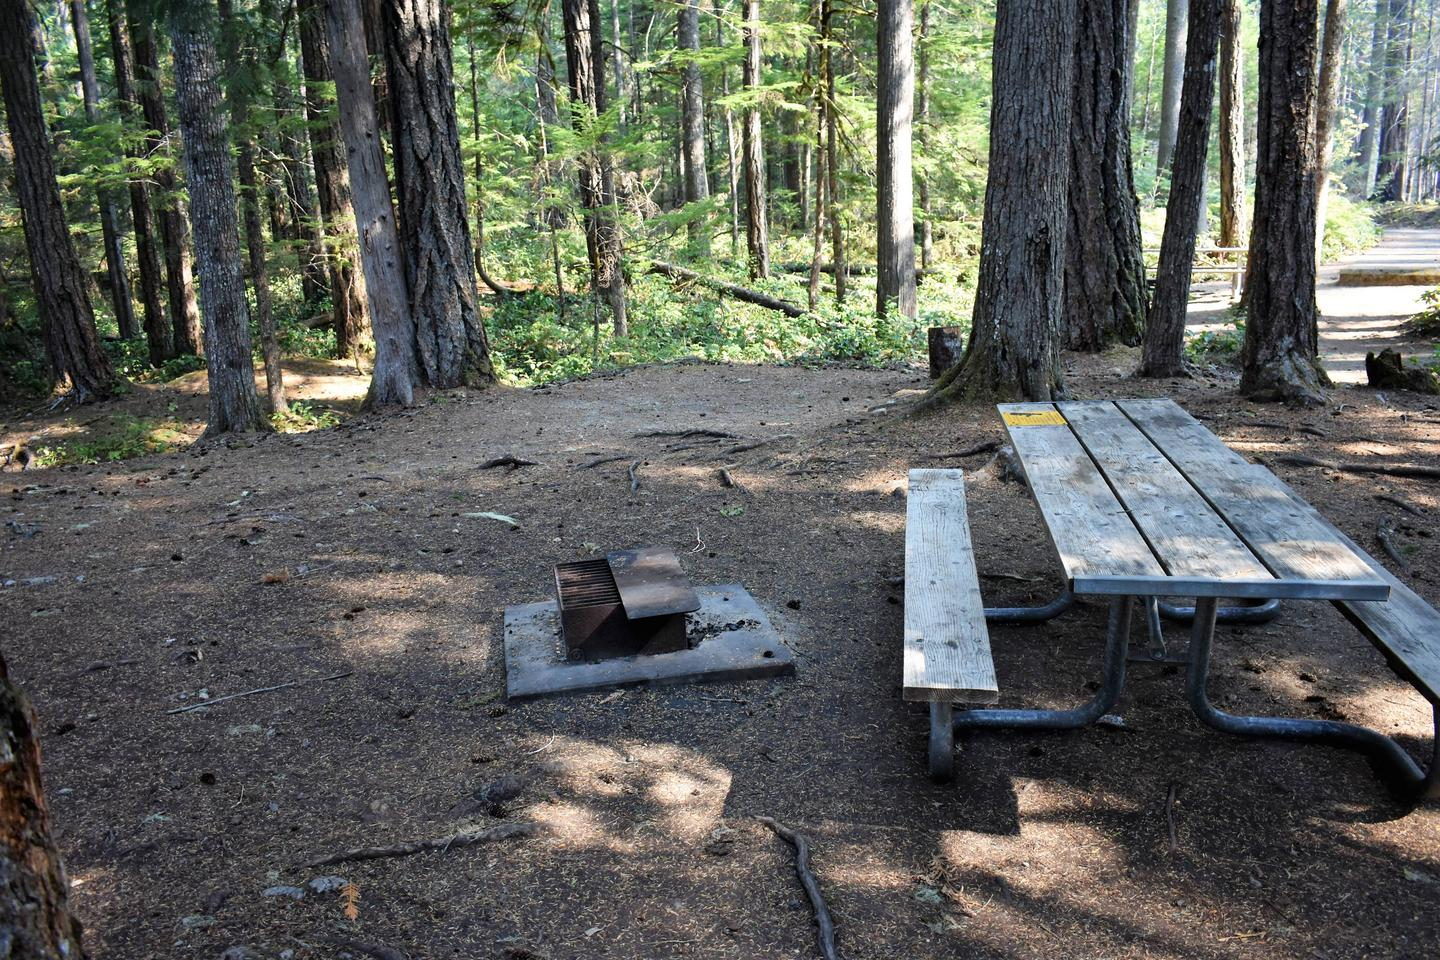 Tent area, fire ring,  and picnic tableView of campsite